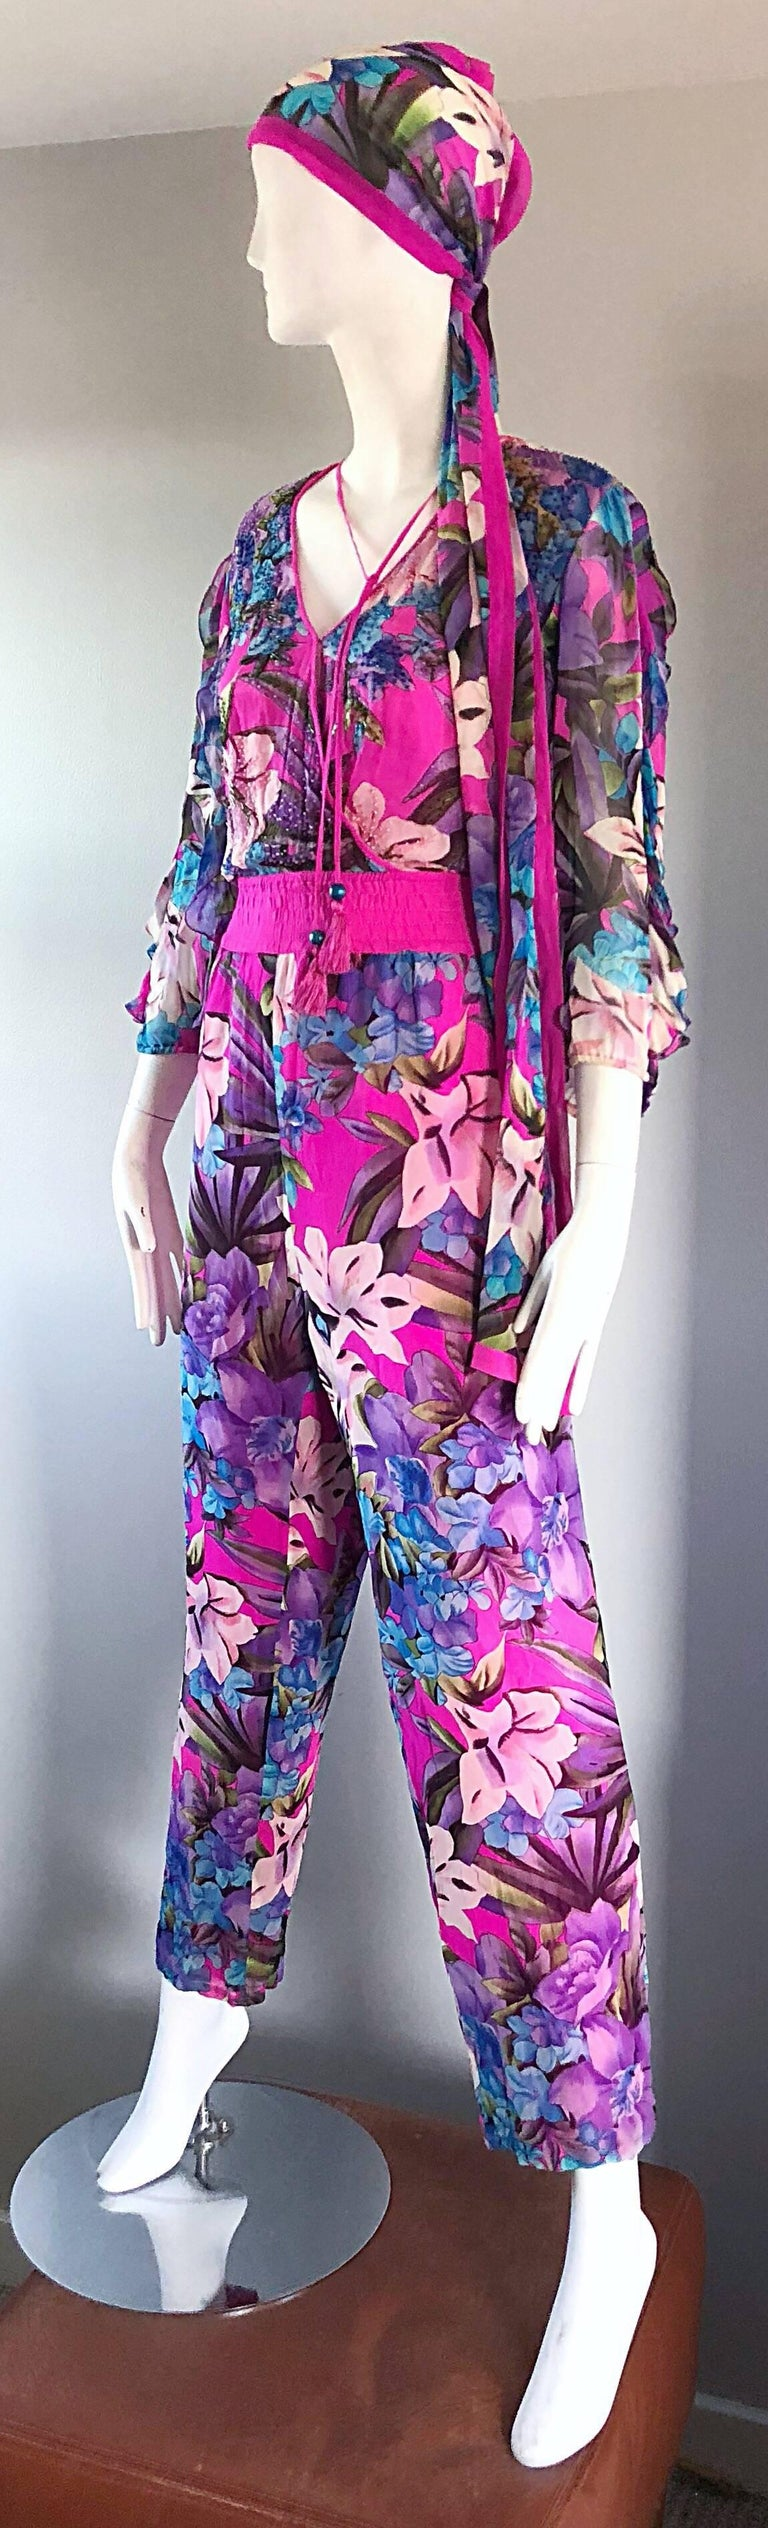 Amazing Vintage Diane Freis Silk Chiffon Beaded Pink Jumpsuit & Head Scarf Sash  In Excellent Condition For Sale In Chicago, IL